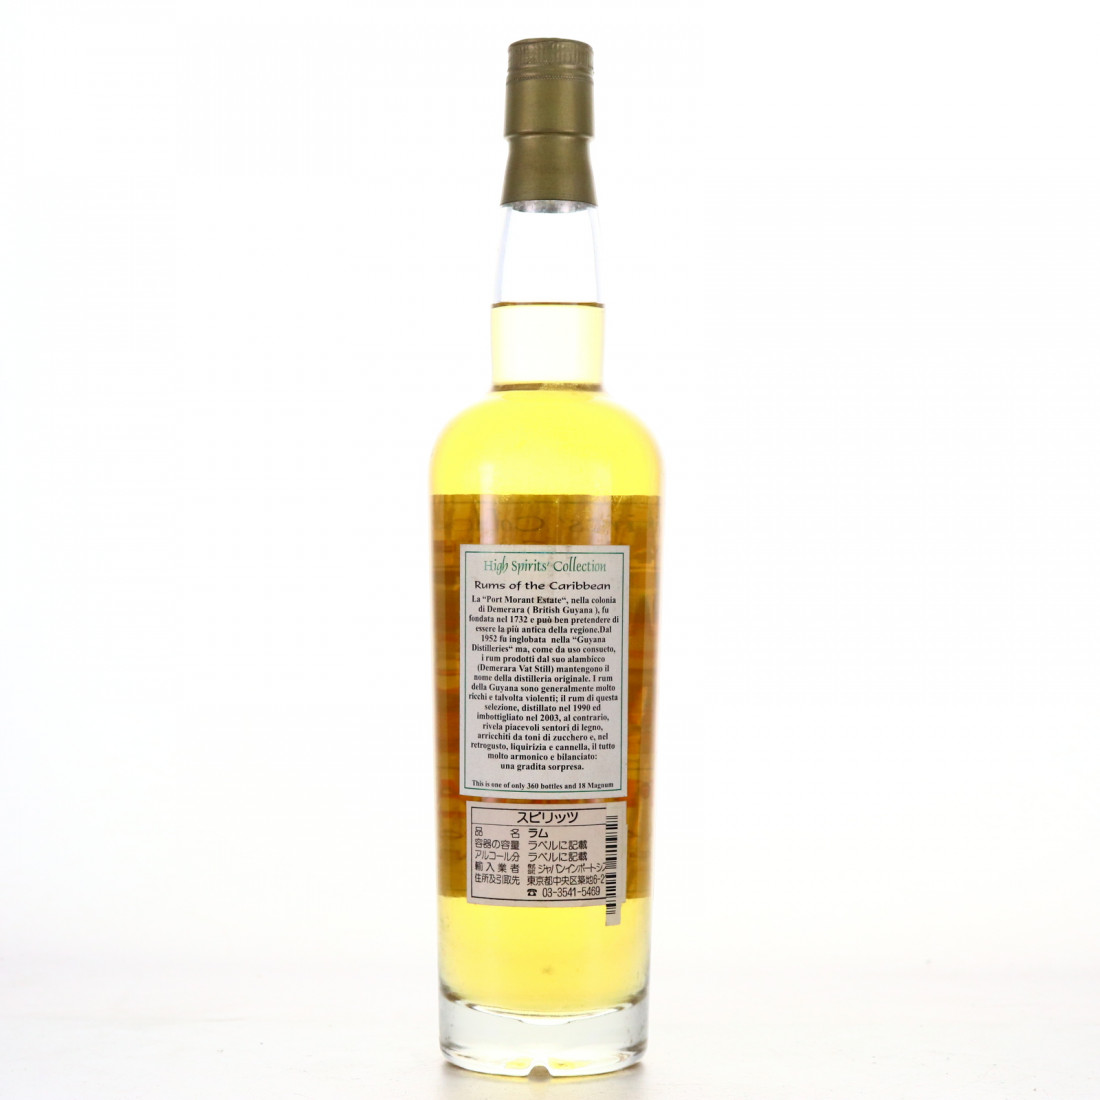 Port Mourant 1990 High Spirits 13 Year Old